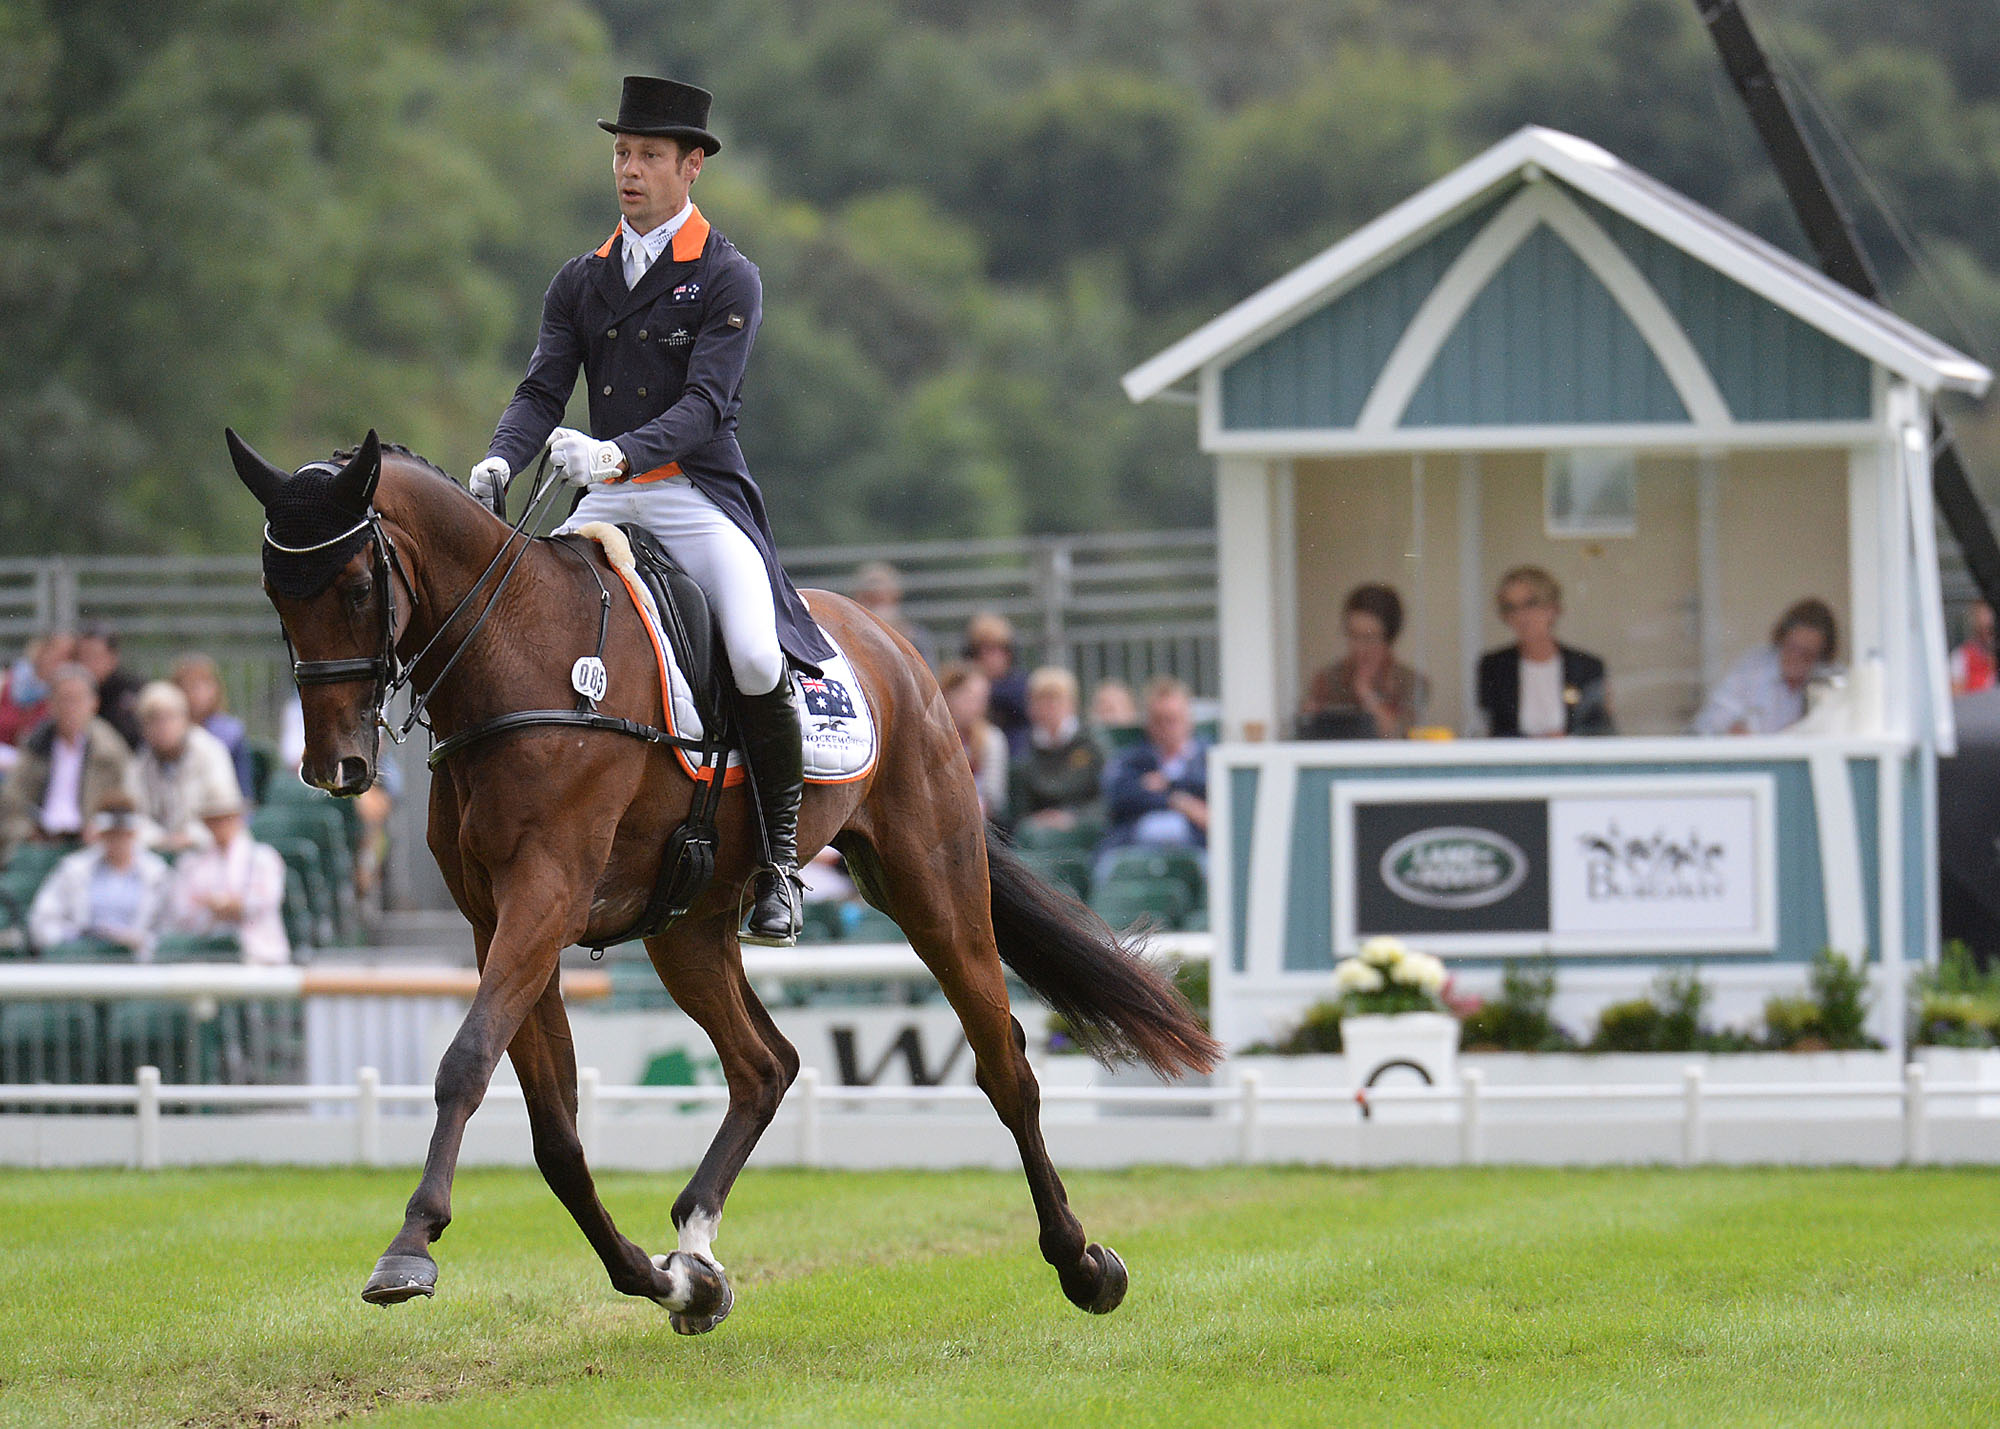 Burghley 2016 saw over 155,000 visitors (Pic:Land Rover Burghley Horse Trials Peter Nixon)